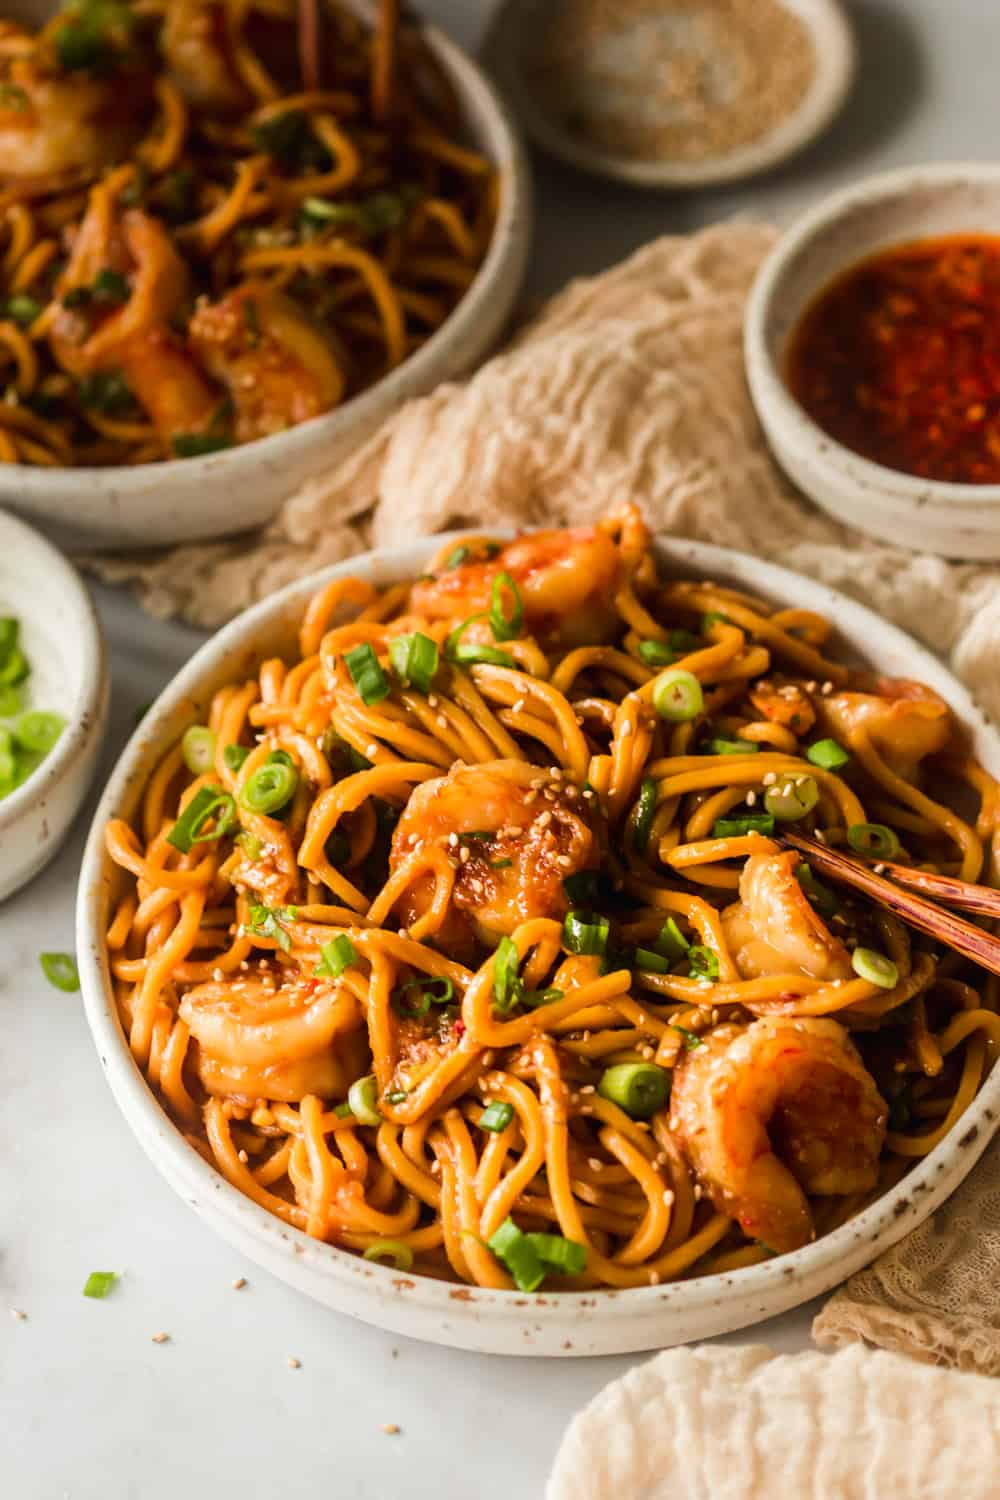 White bowl with yellow thin noodles, shrimp, and green onions on top.